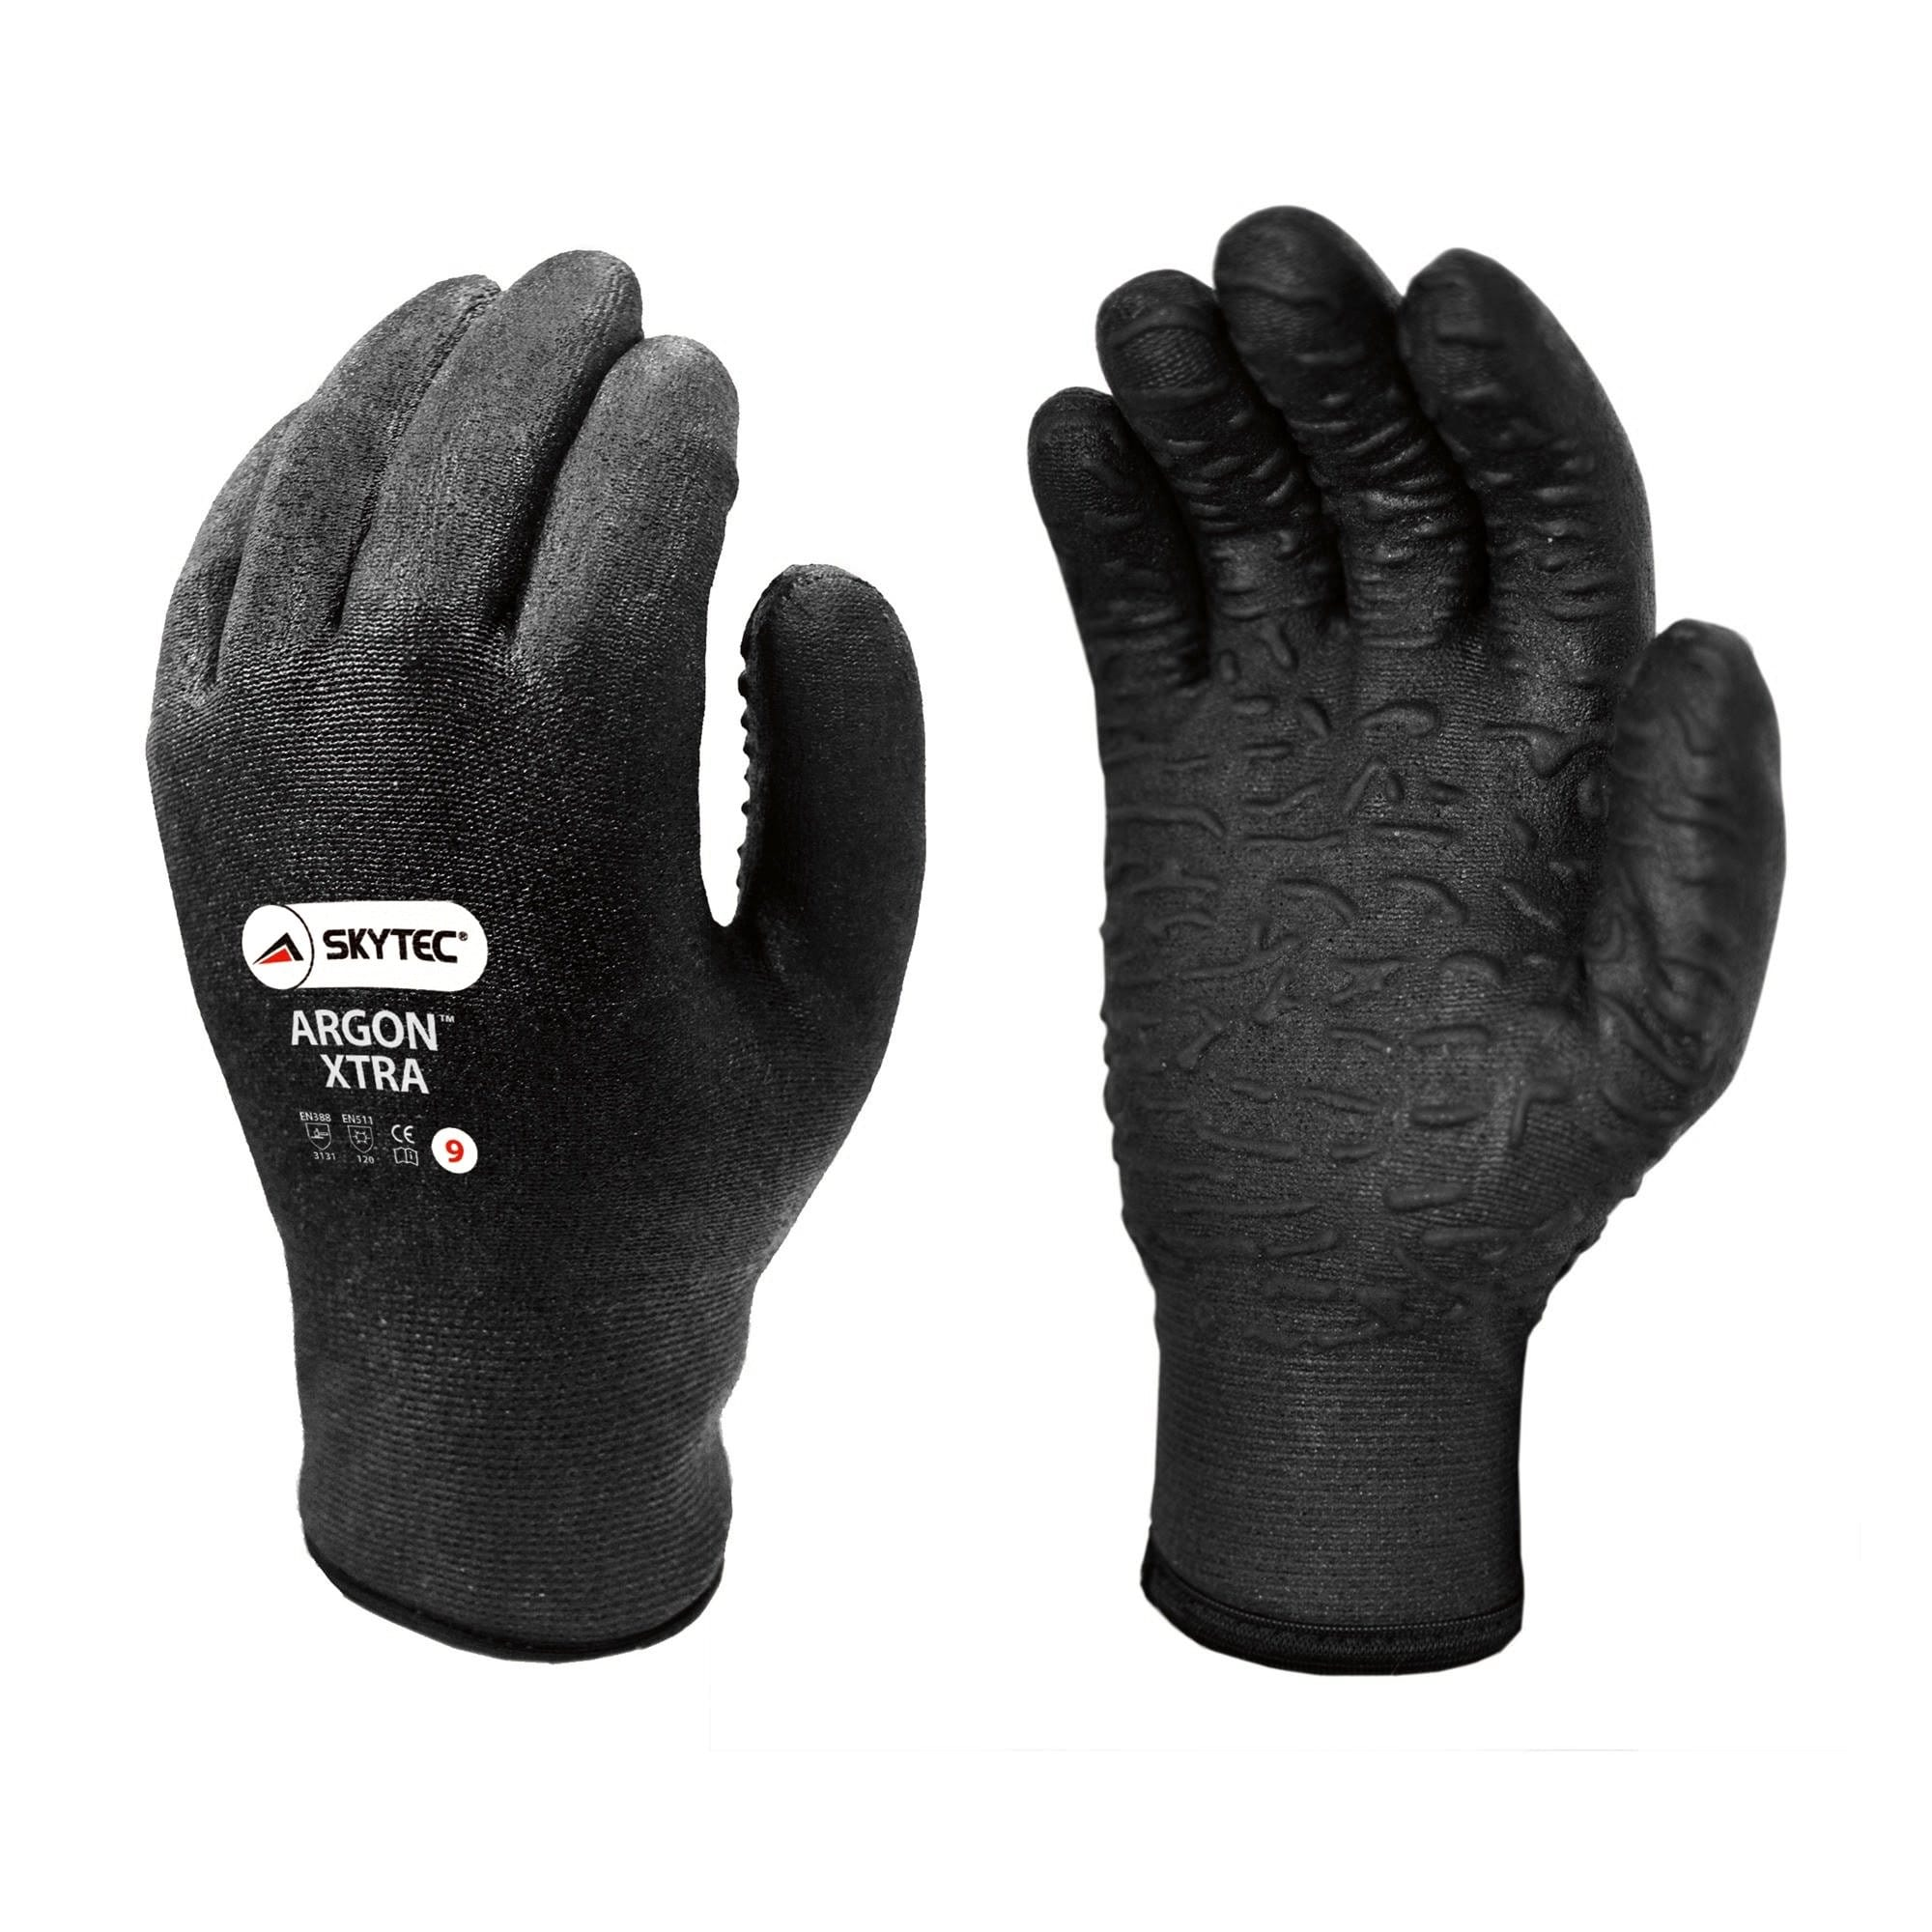 SKYTEC® Argon™ Xtra Insulated Gloves - Window Cleaning Warehouse Ltd